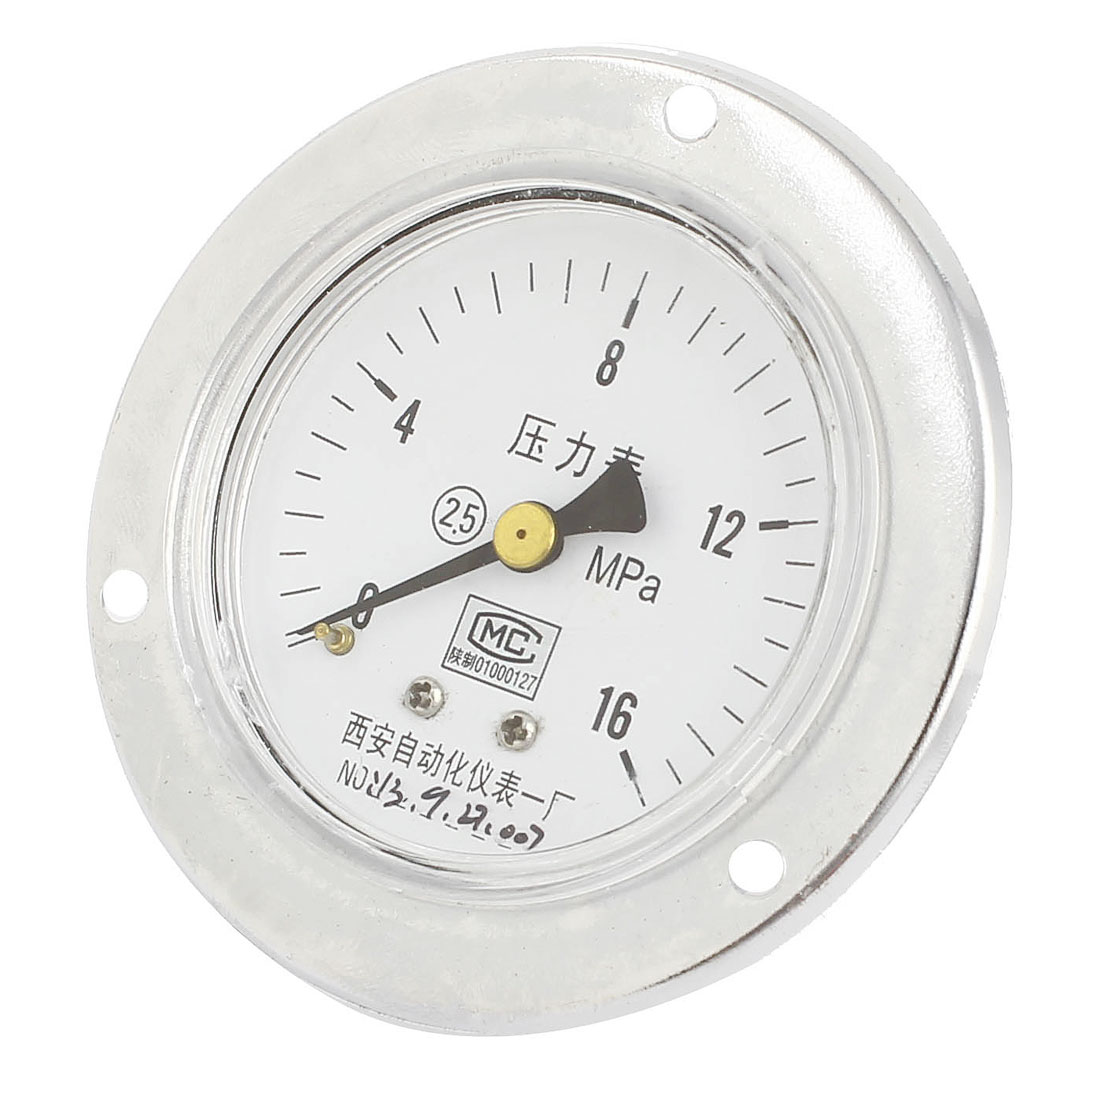 13mm Male Thread Water Air Pneumatic Vacuum Pressure Meter Gauge 0-16MPa 60mm